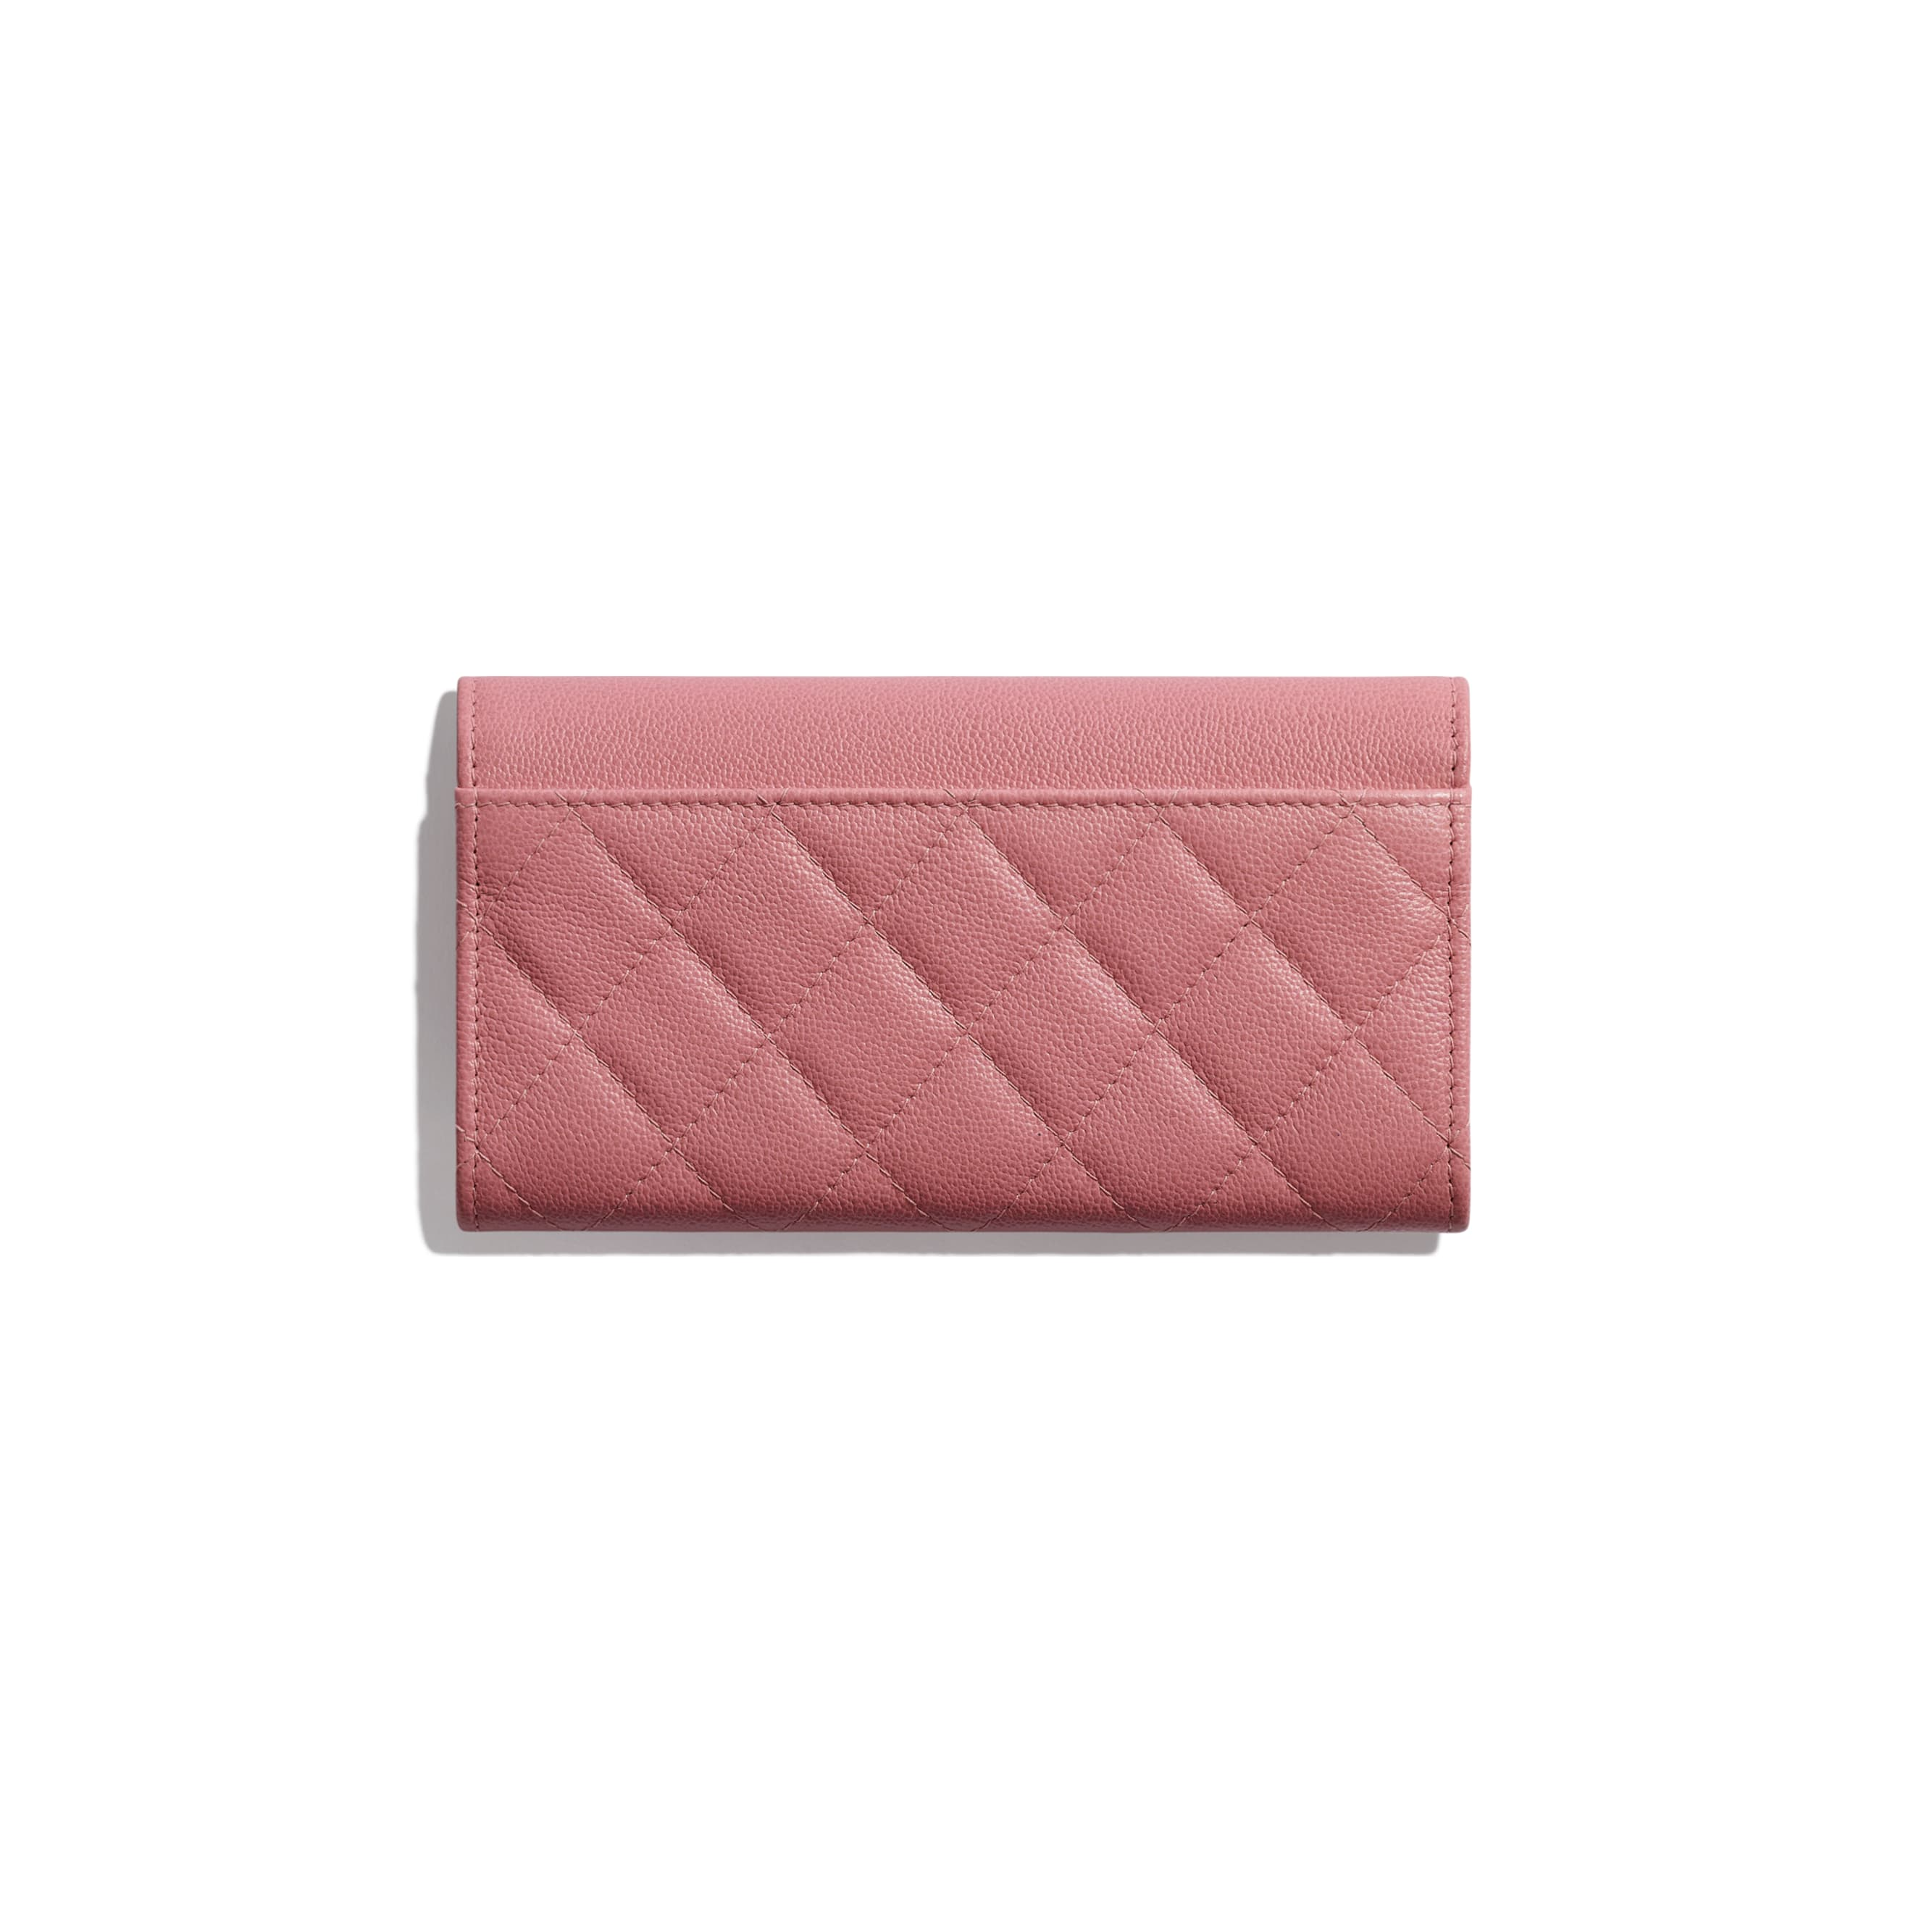 Flap Wallet - Pink - Grained Calfskin & Silver Metal - CHANEL - Alternative view - see standard sized version